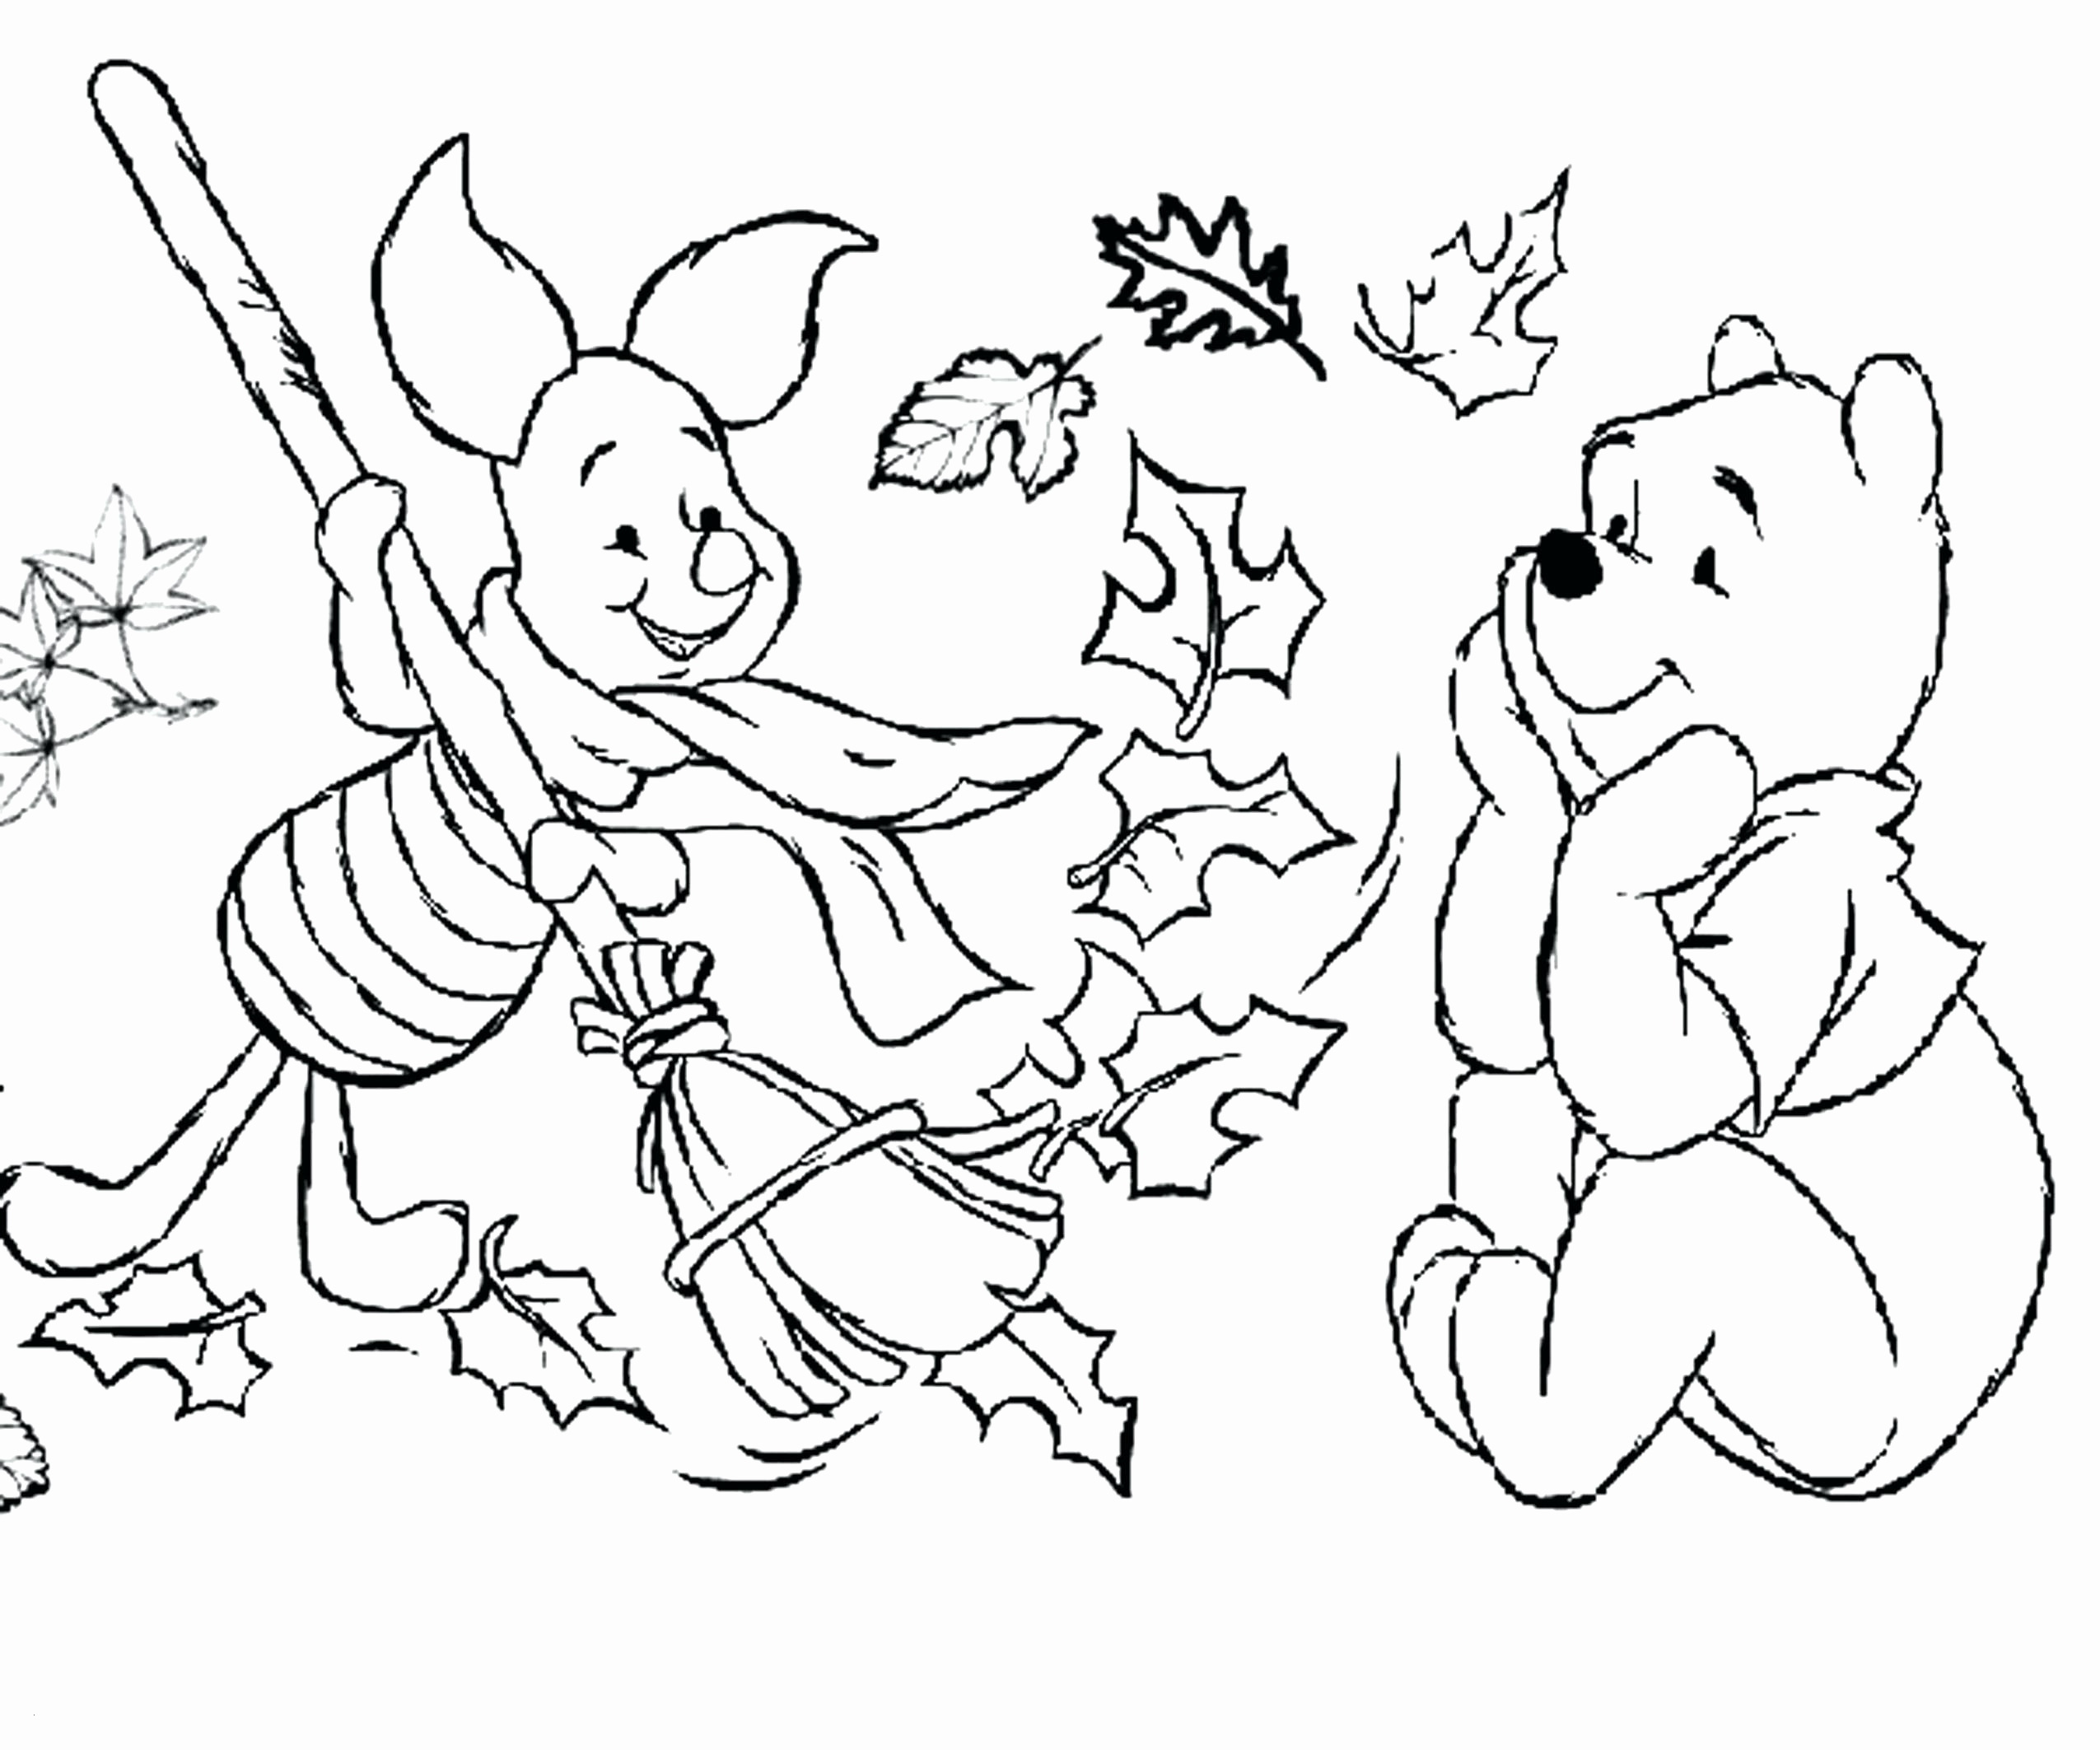 detective coloring pages Collection-Basil Coloring Page Brilliant Detective Coloring Pages Verikira 20-r